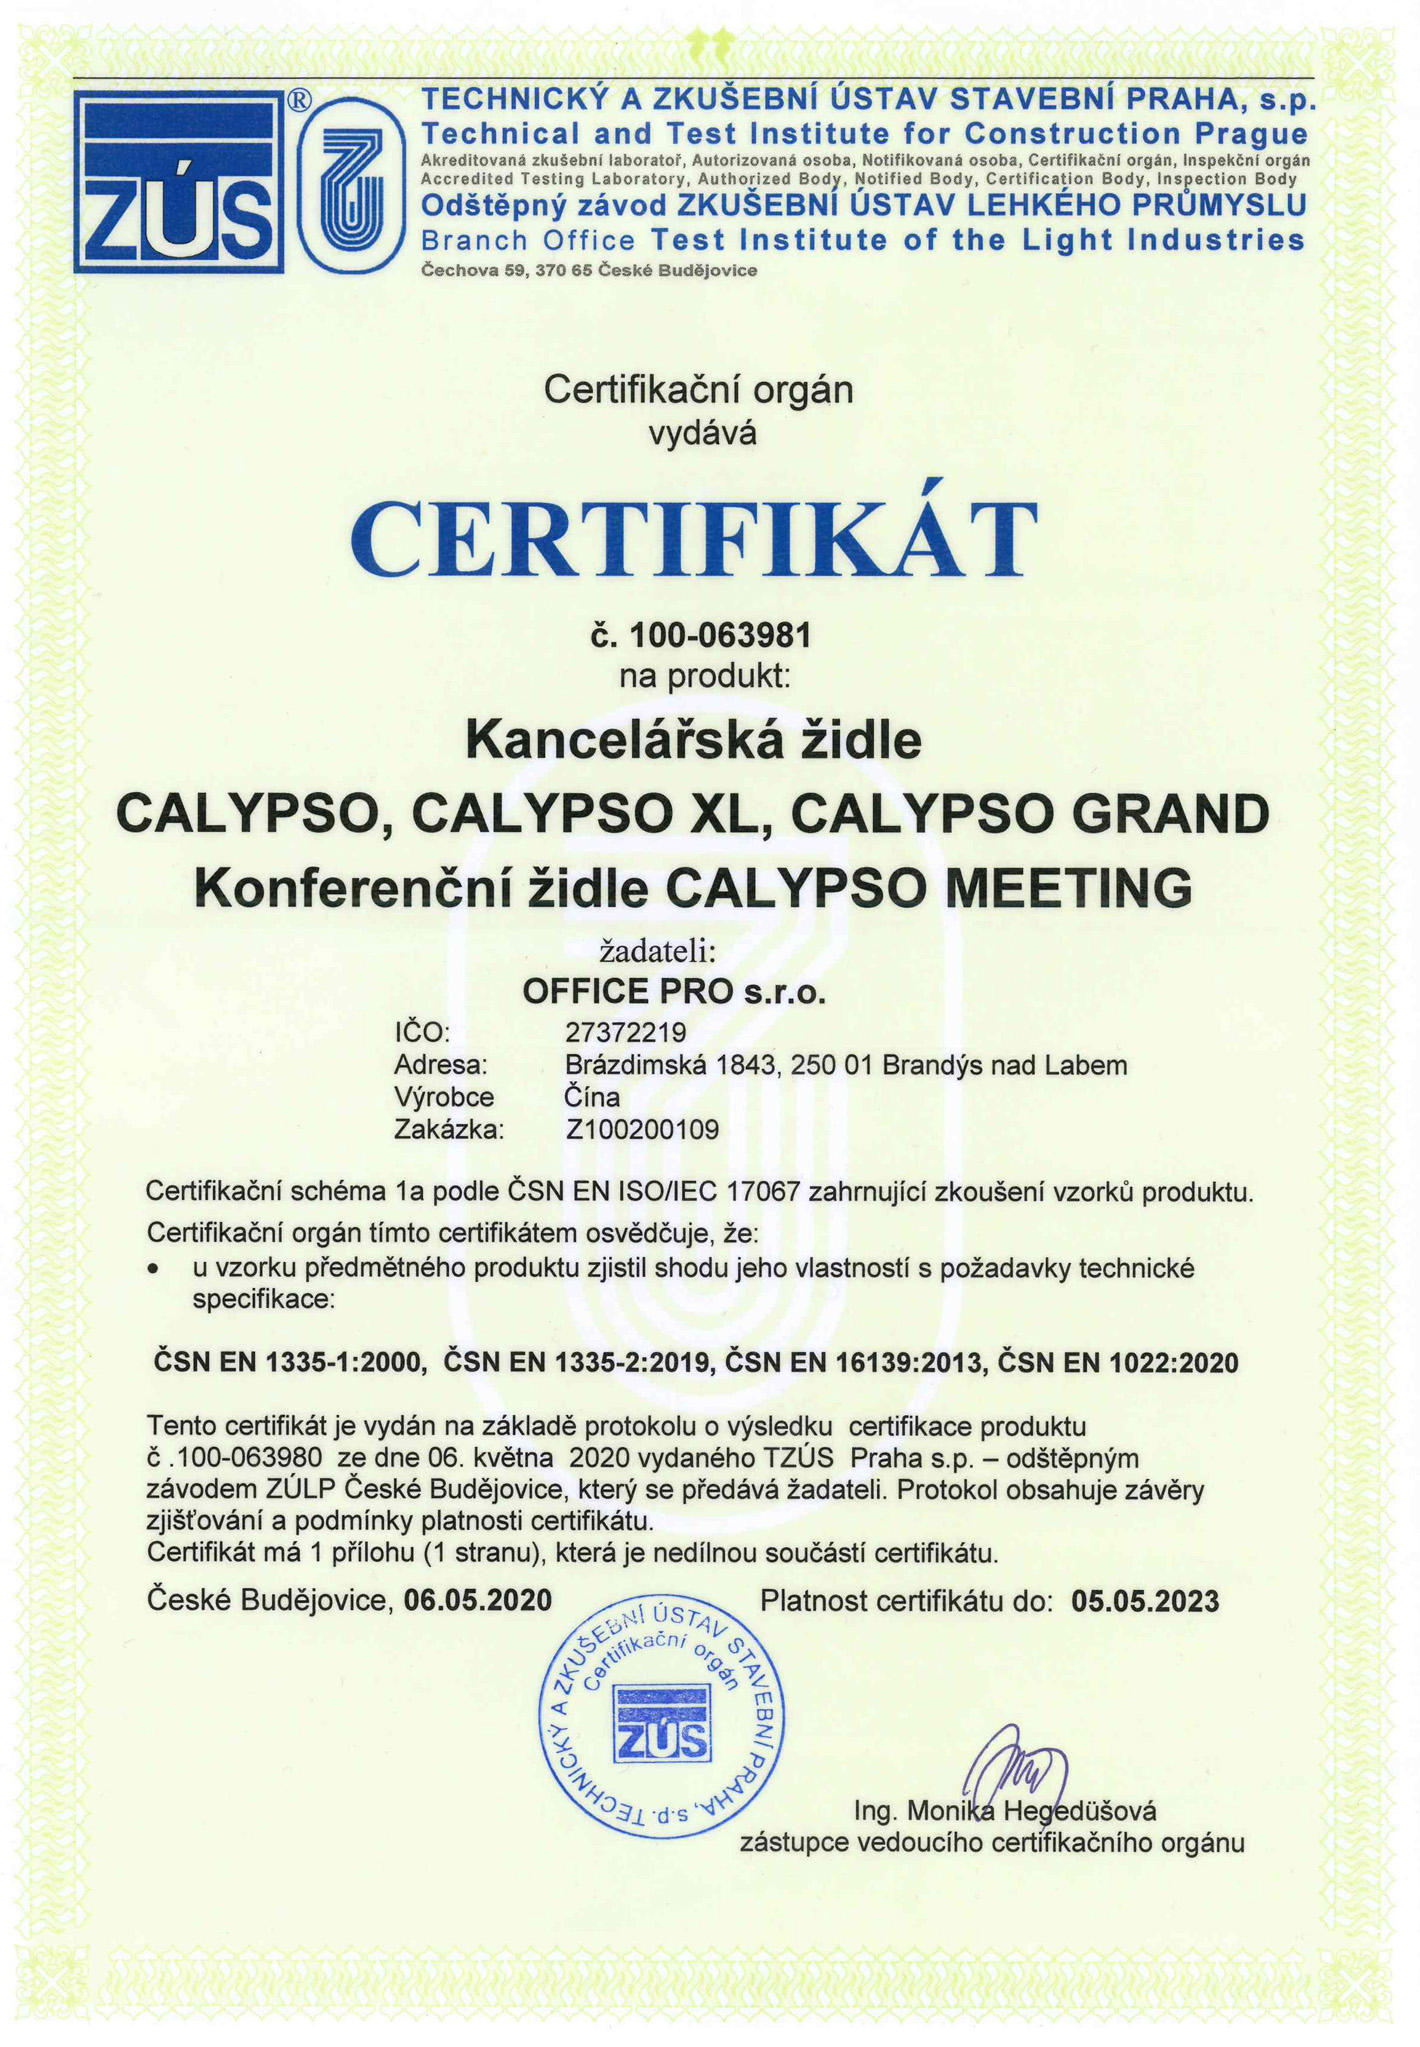 http://www.officepro.cz/data/files/certifikaty-2020-calypso.jpg